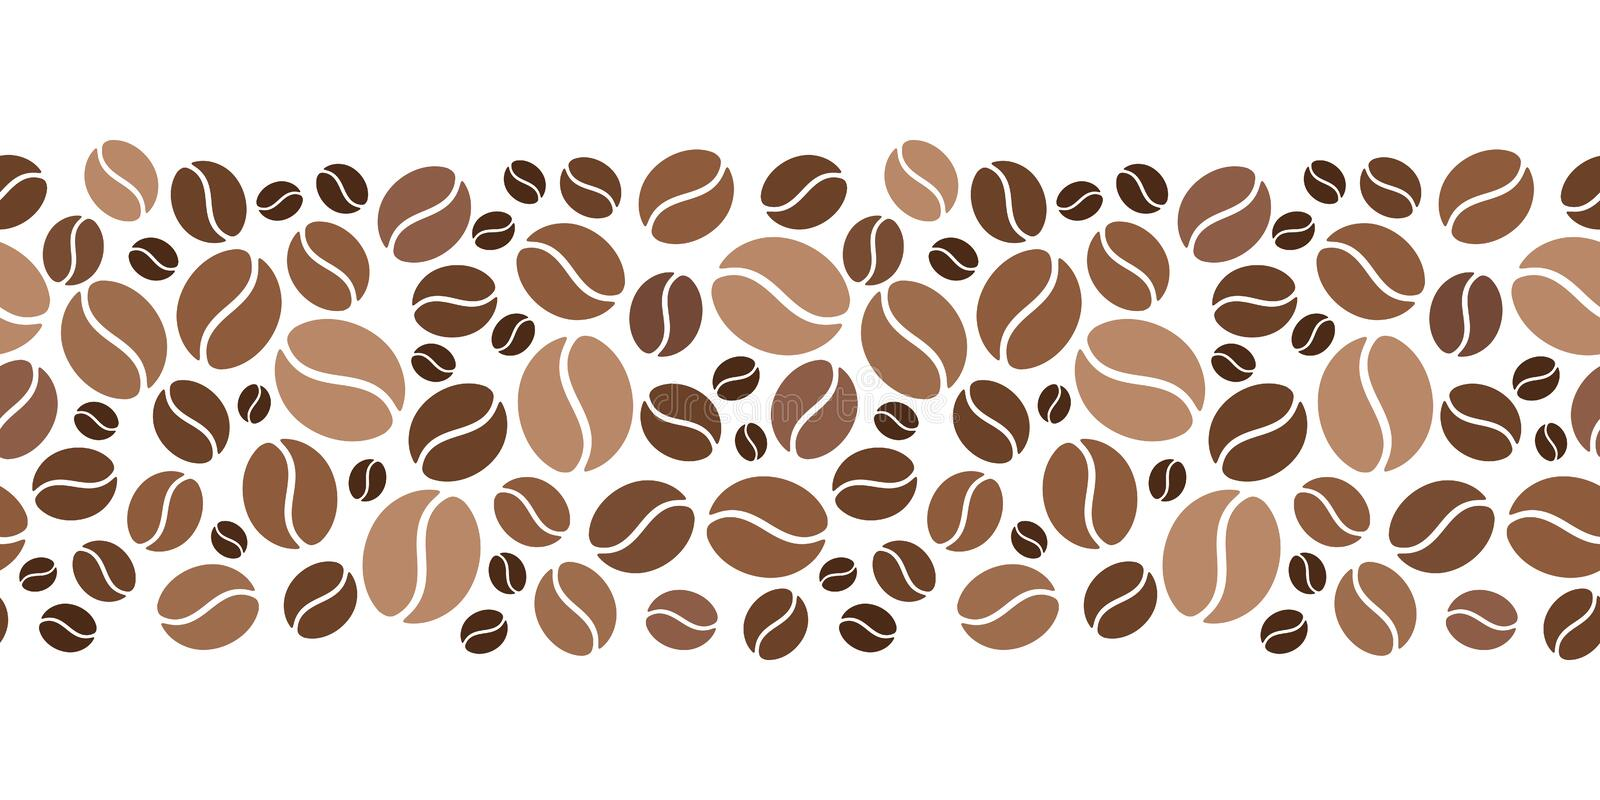 Horizontal seamless background with coffee beans. Vector illustration. royalty free illustration